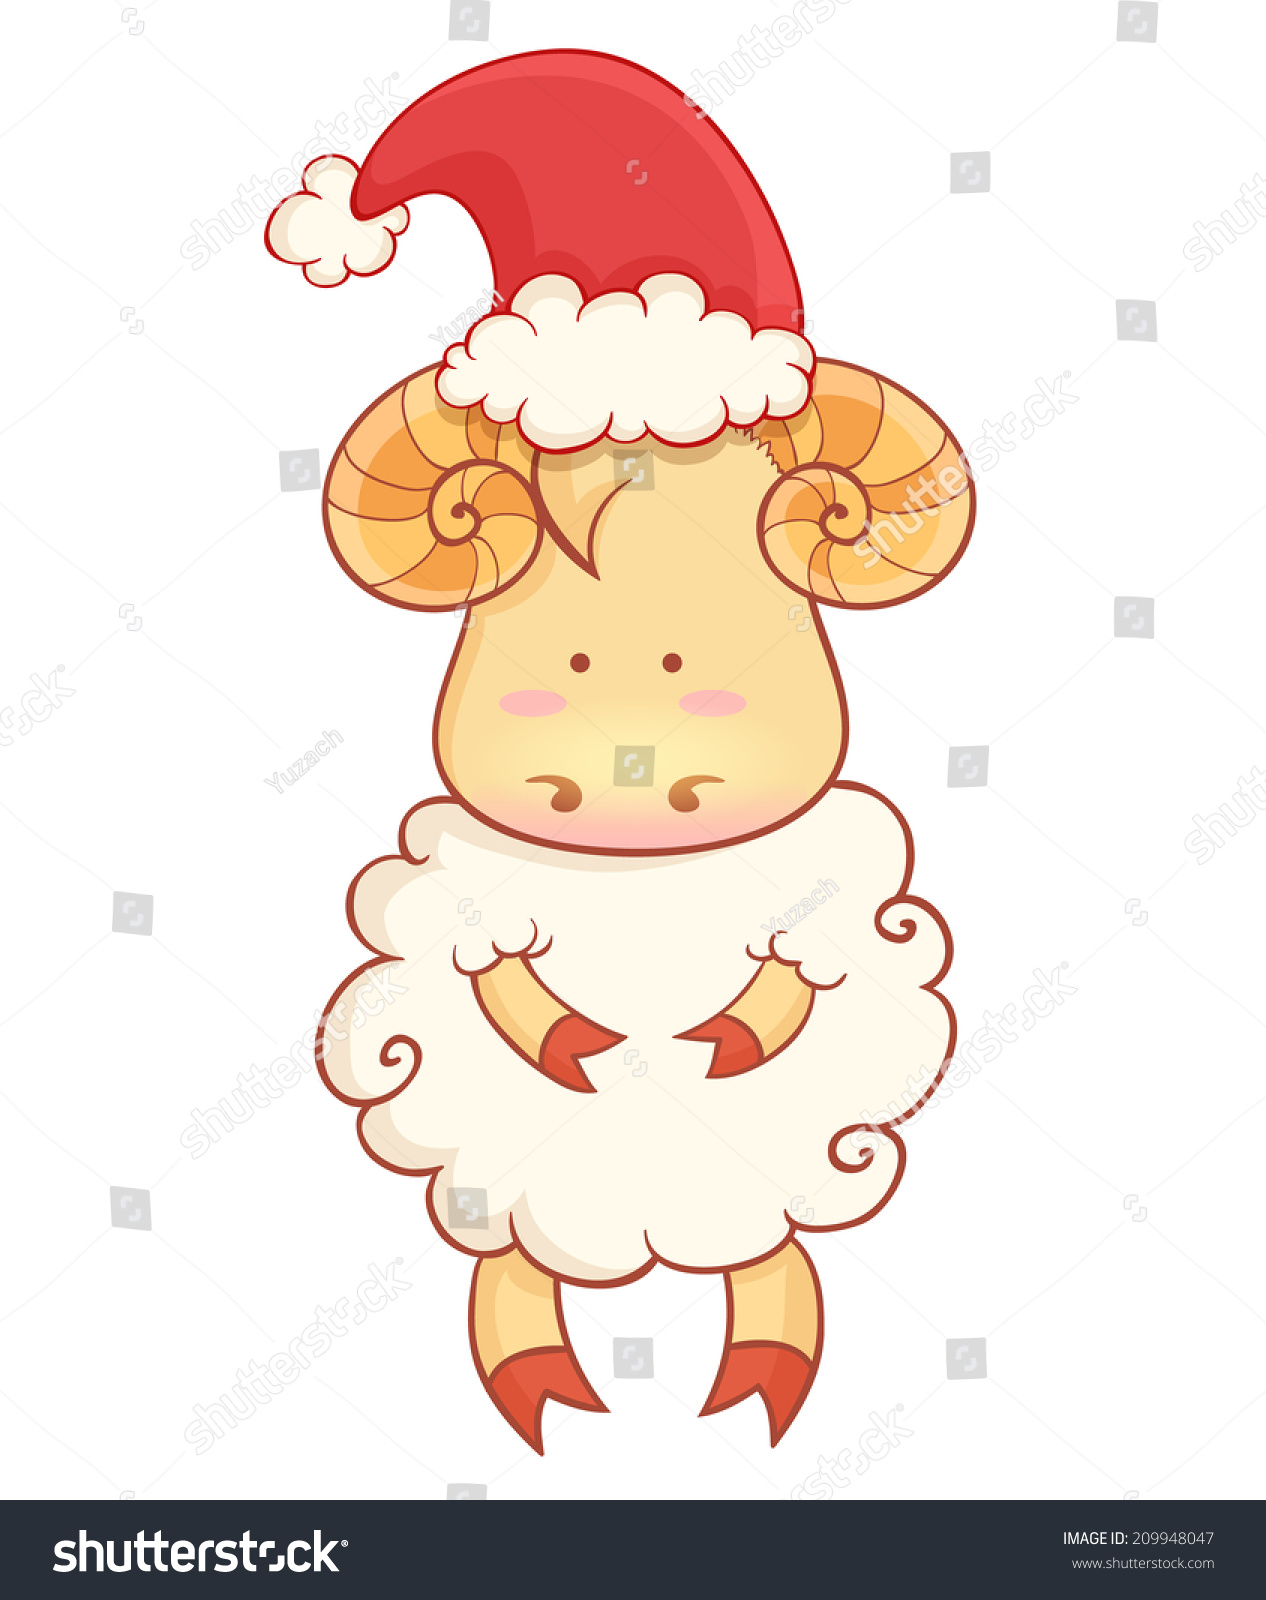 cute cartoon baby sheep wearing santa hat character of chinese new year symbol isolated on white